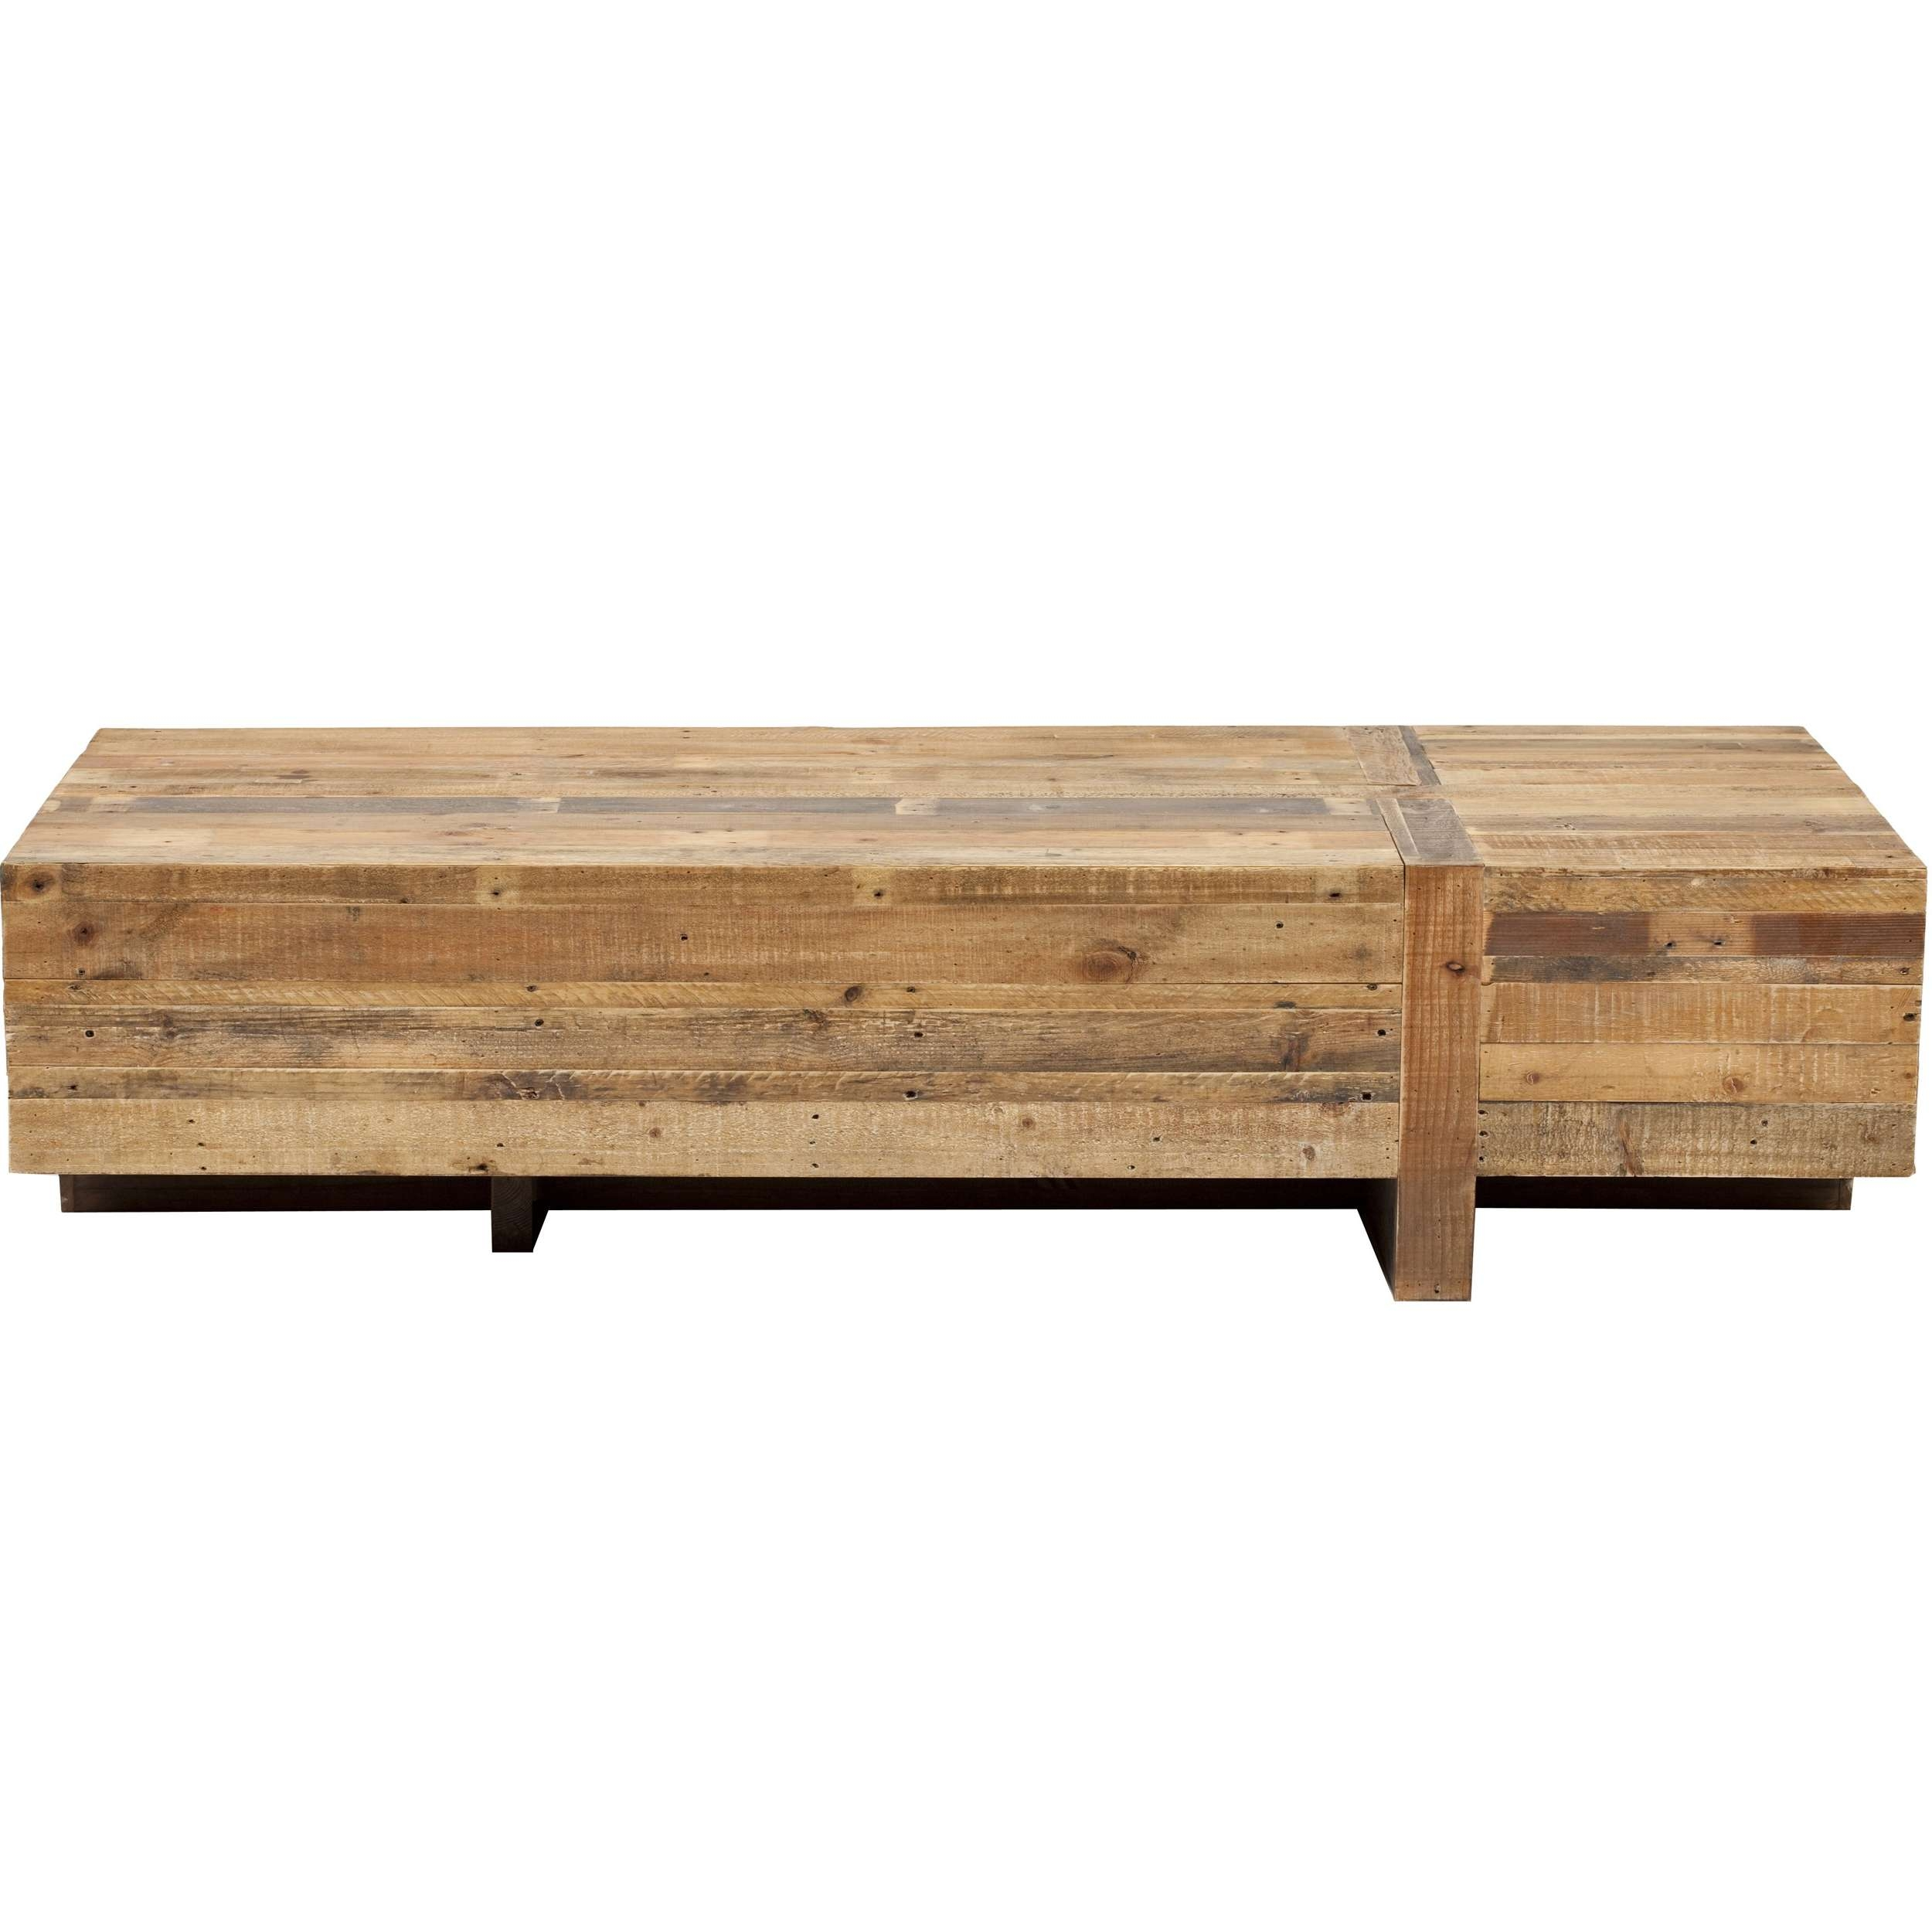 Well Known Cheap Wood Coffee Tables With Coffee Table : Funfee Tables Images Tufted And Upholstered Table (View 5 of 20)